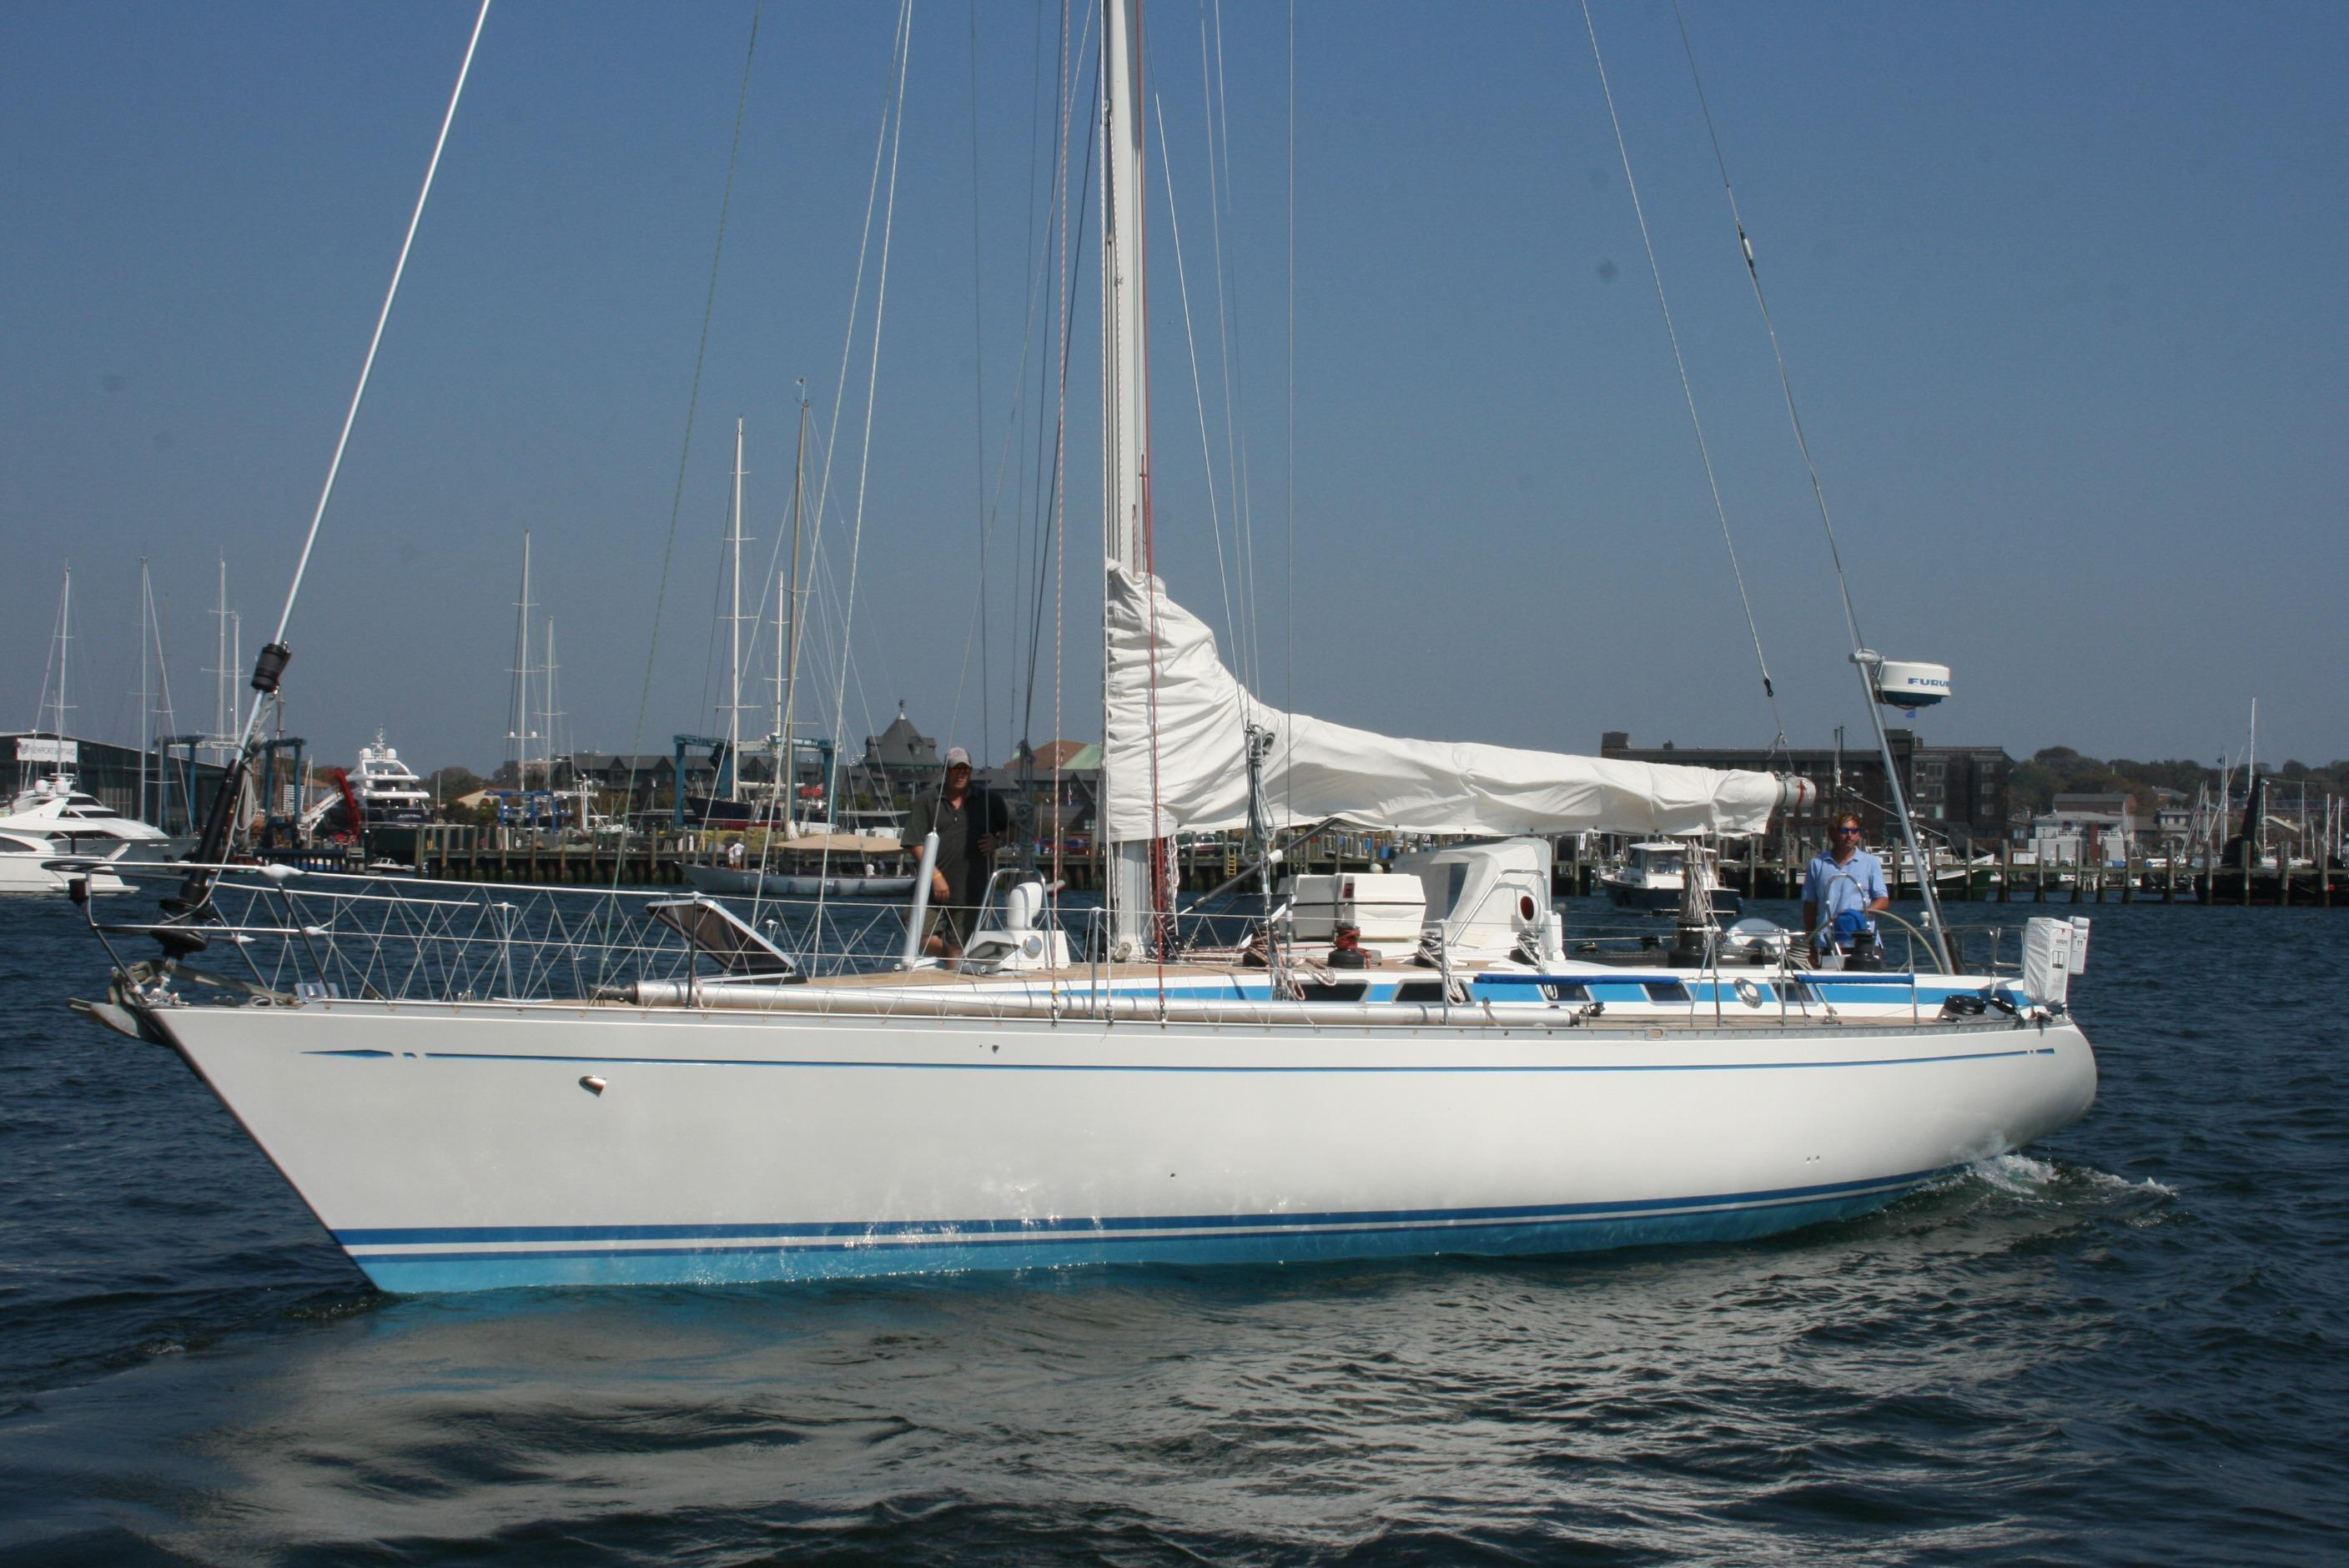 Nautor s swan yachts for sale - Swan Yacht For Sale Swan Yacht Price Swan Review